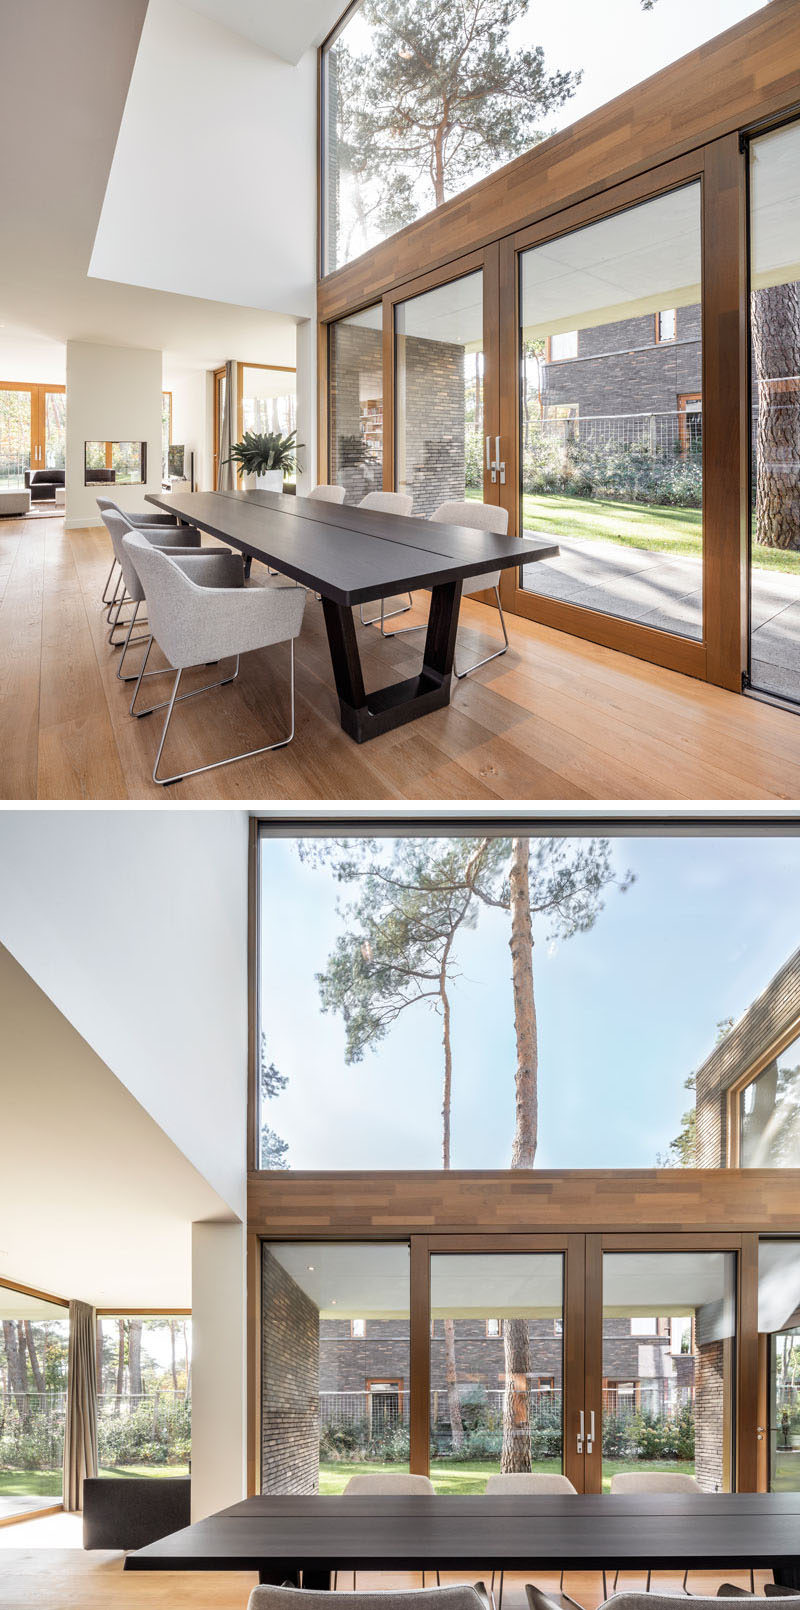 This modern house has a double-height ceiling above dining table, large windows for plenty of natural light, and wood framed sliding doors to connect to the outdoors. #DiningRoom #DoubleHeightCeiling #Windows #SlidingDoors